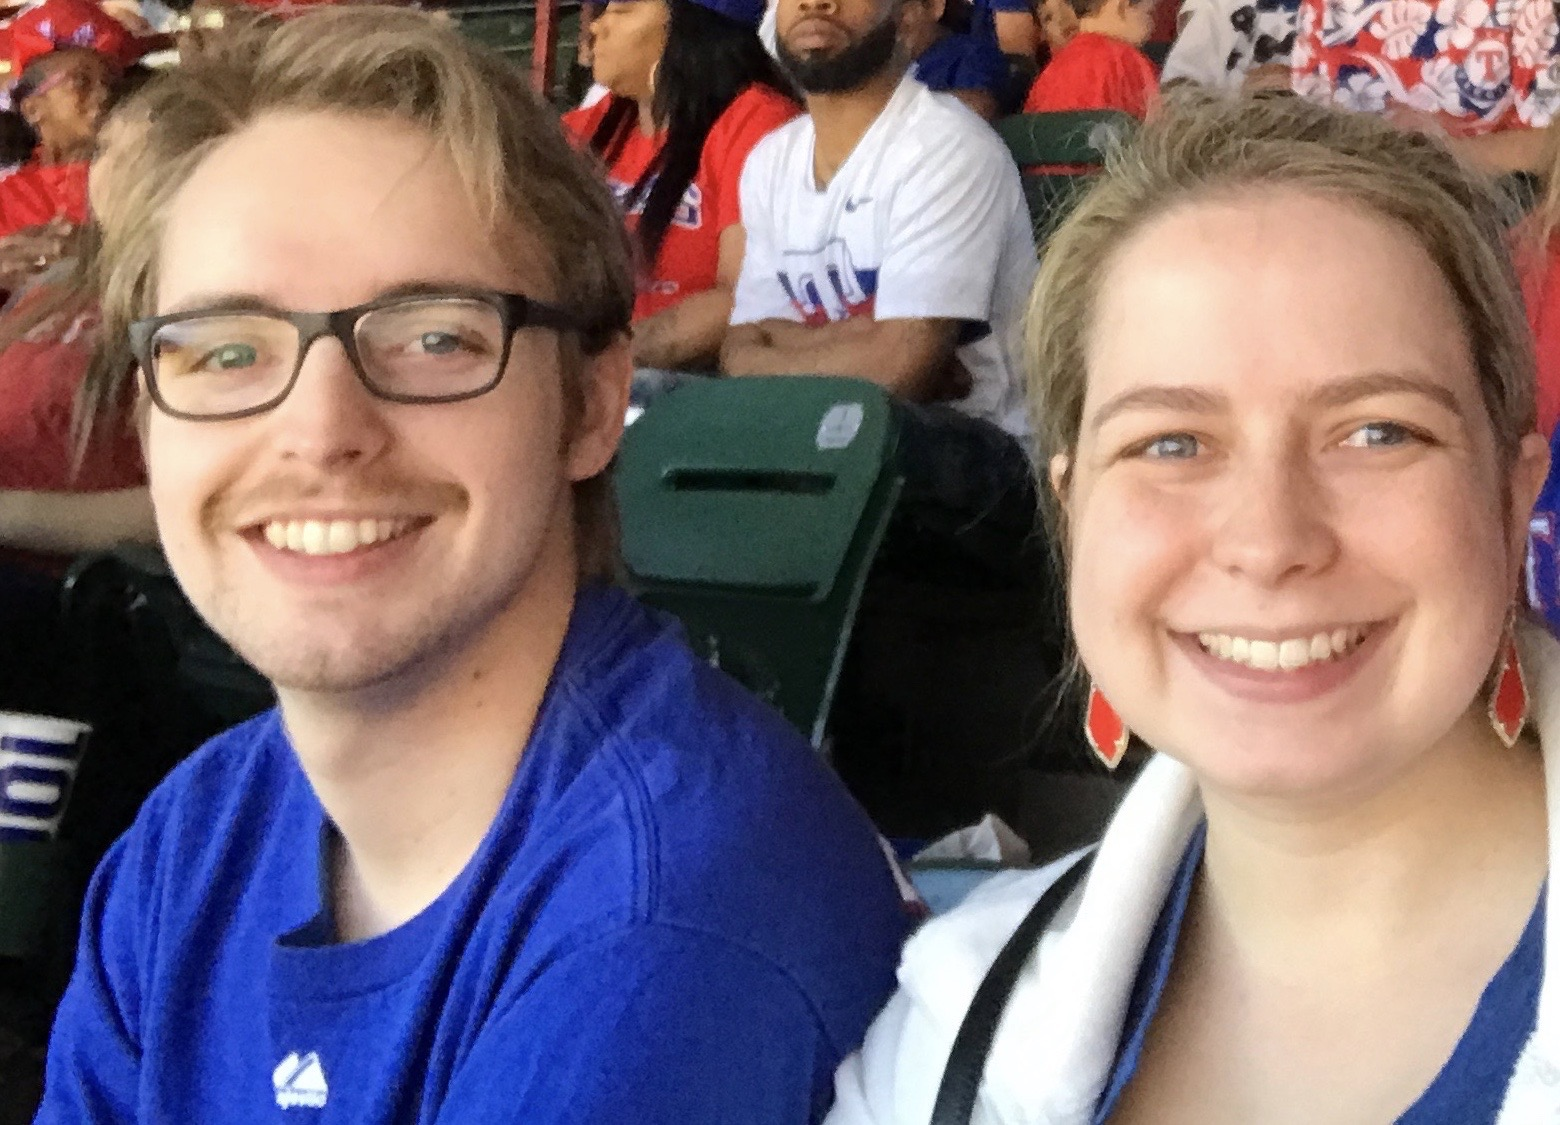 Katie and her curious brother Brad at a Texas Rangers Game.